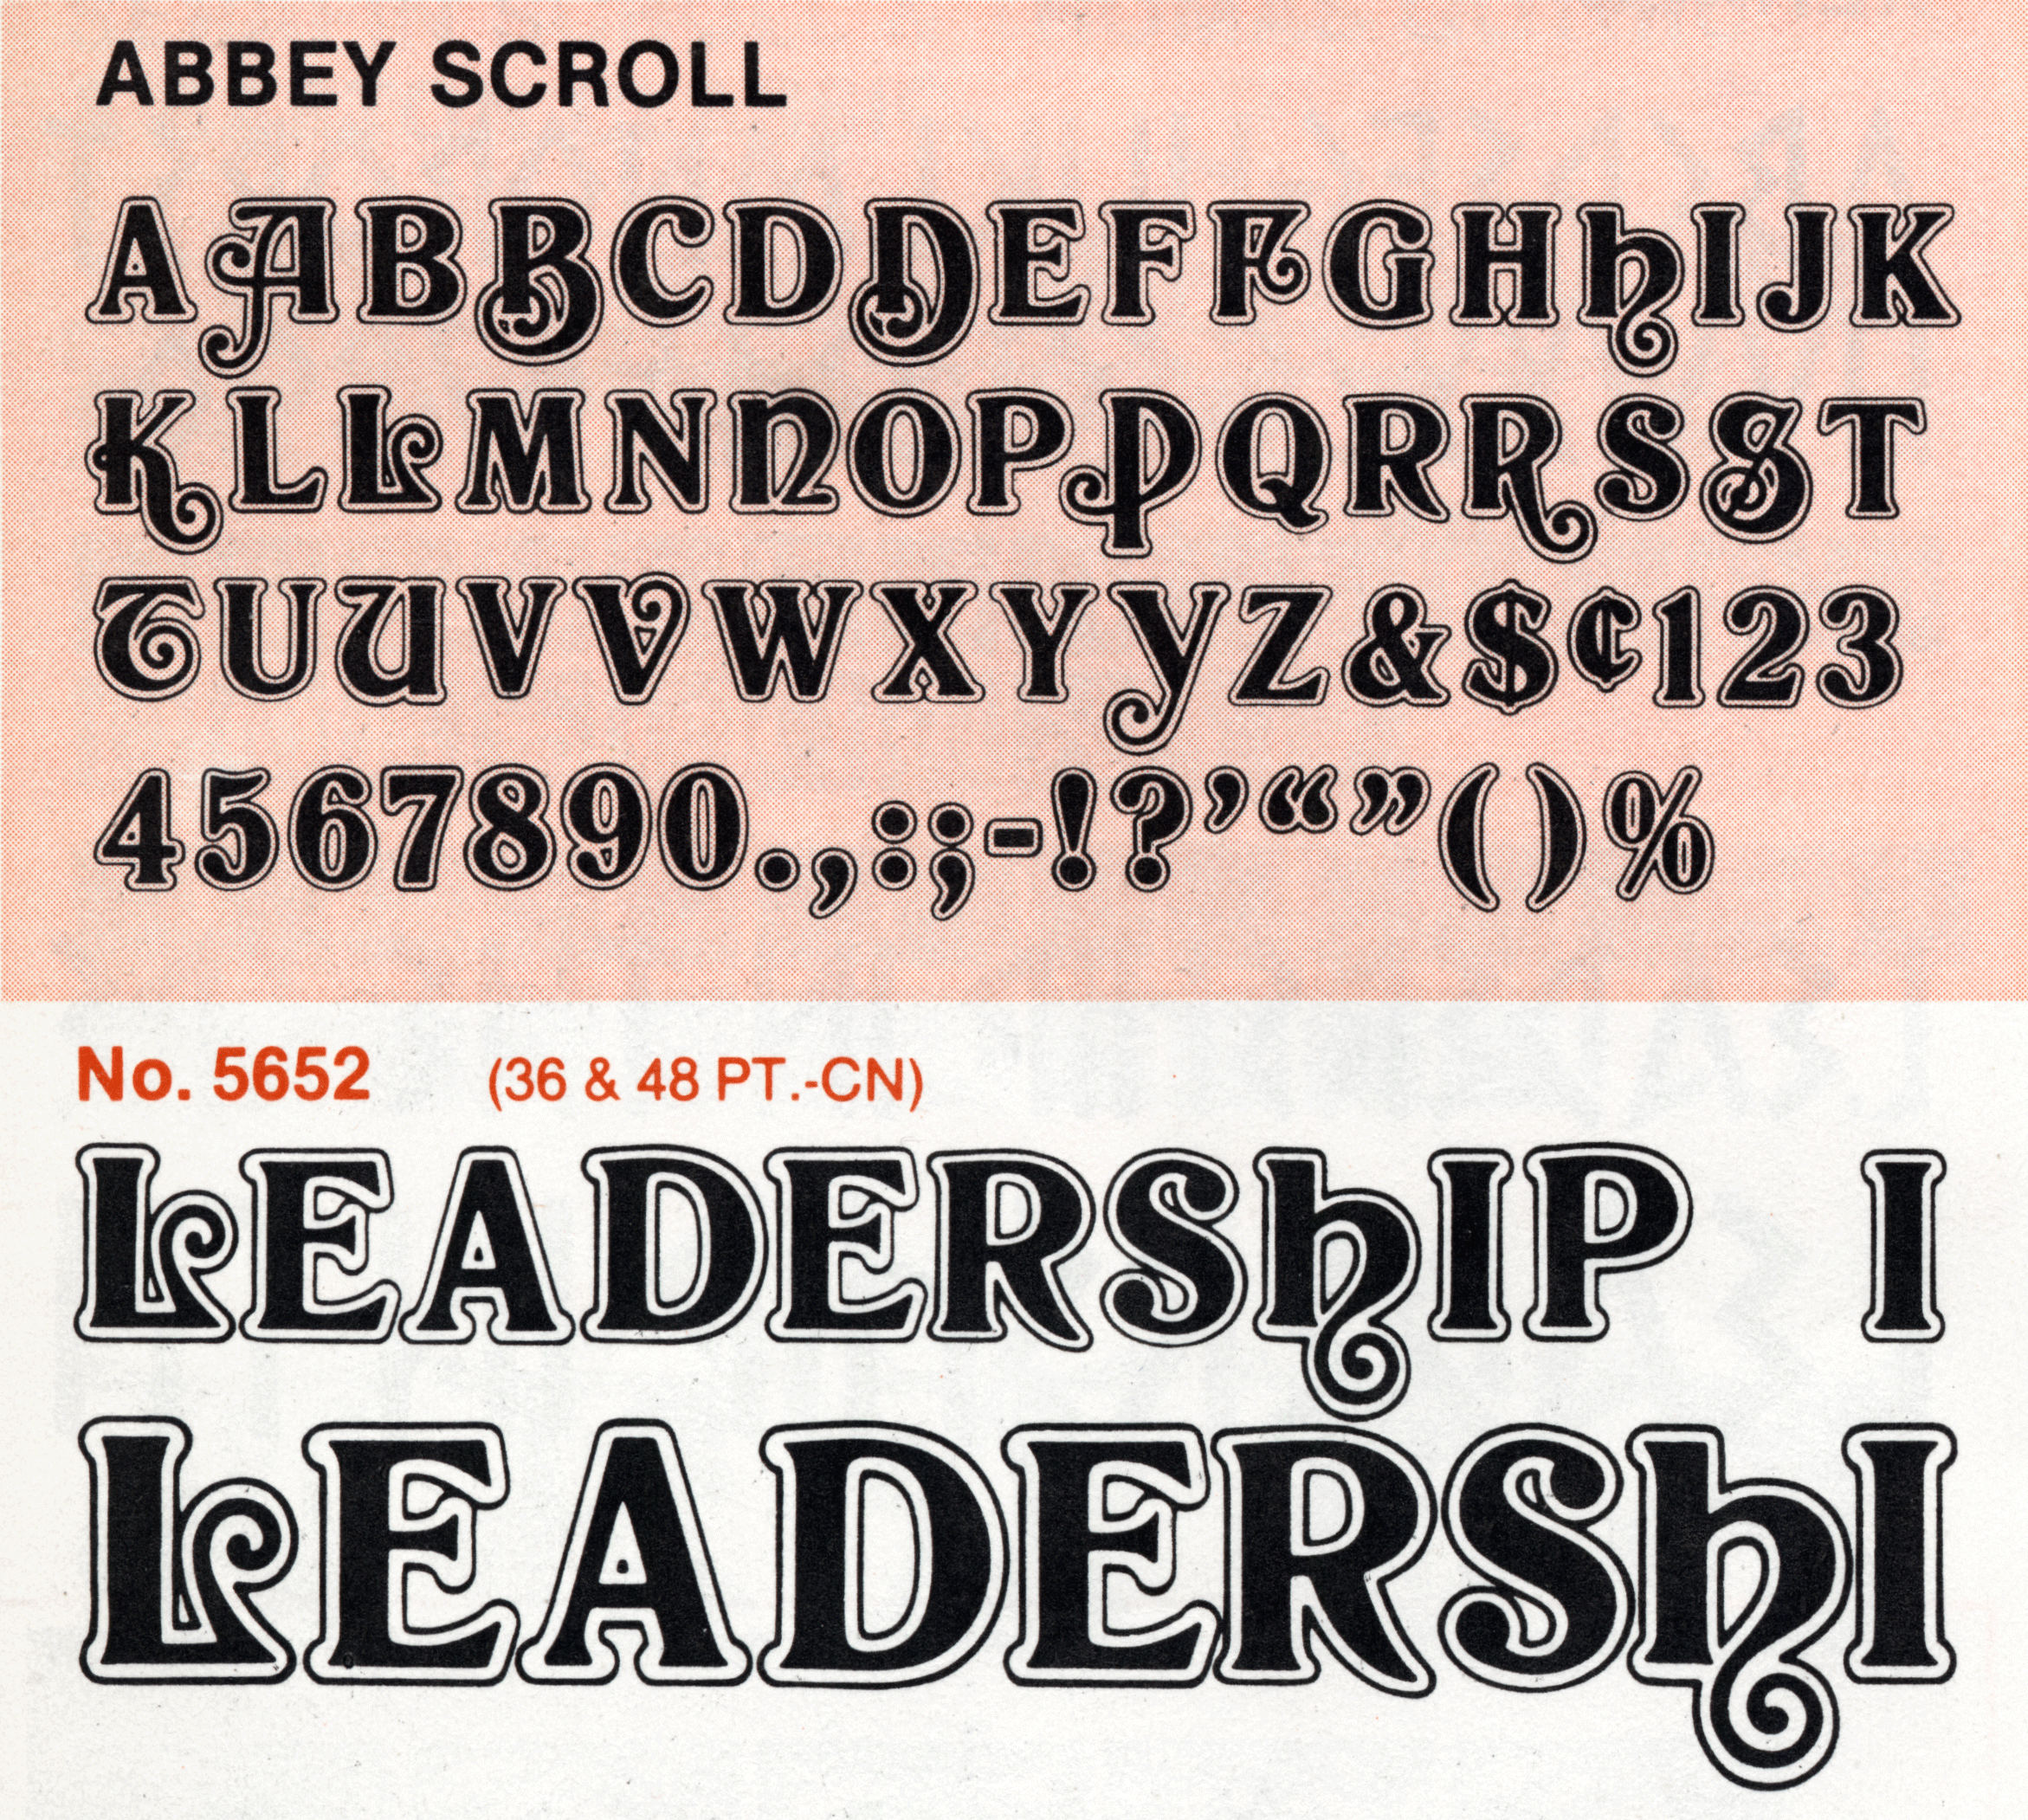 Abbey Scroll